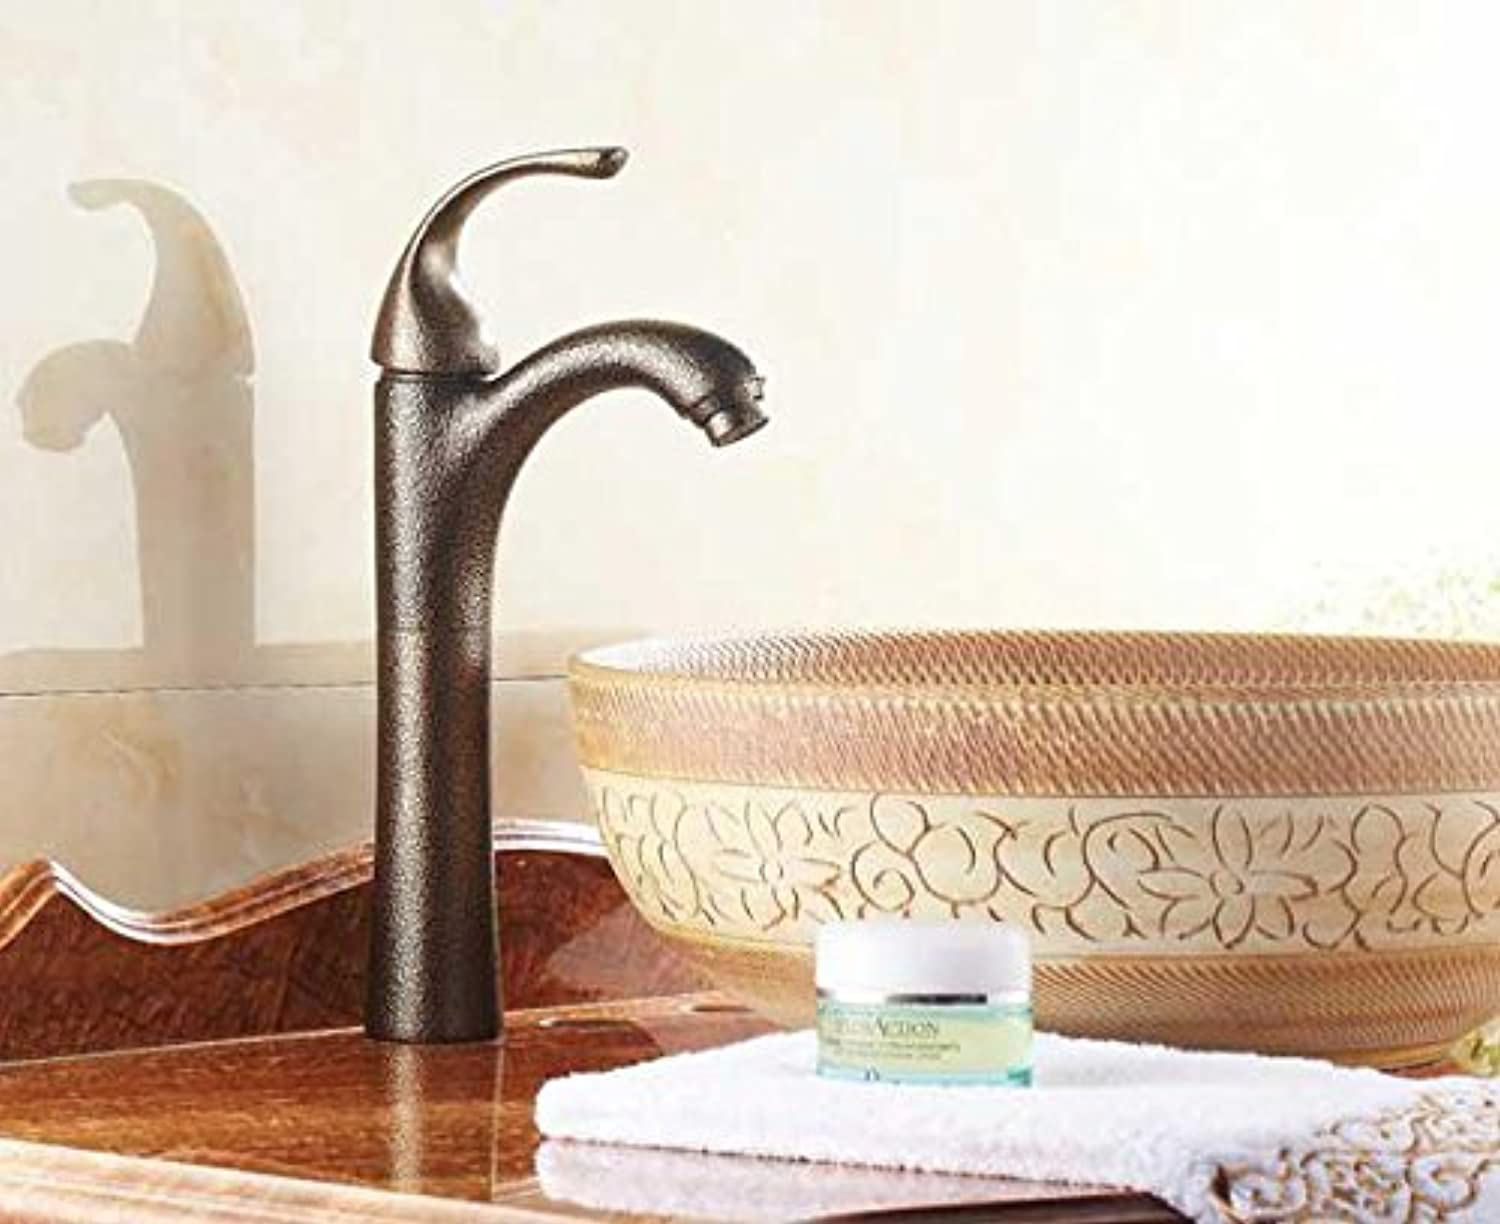 PLYY Faucet single type,bathroom vanity lavatory faucet,brass European-style vintage kitchen sink faucet,hot and cold faucet